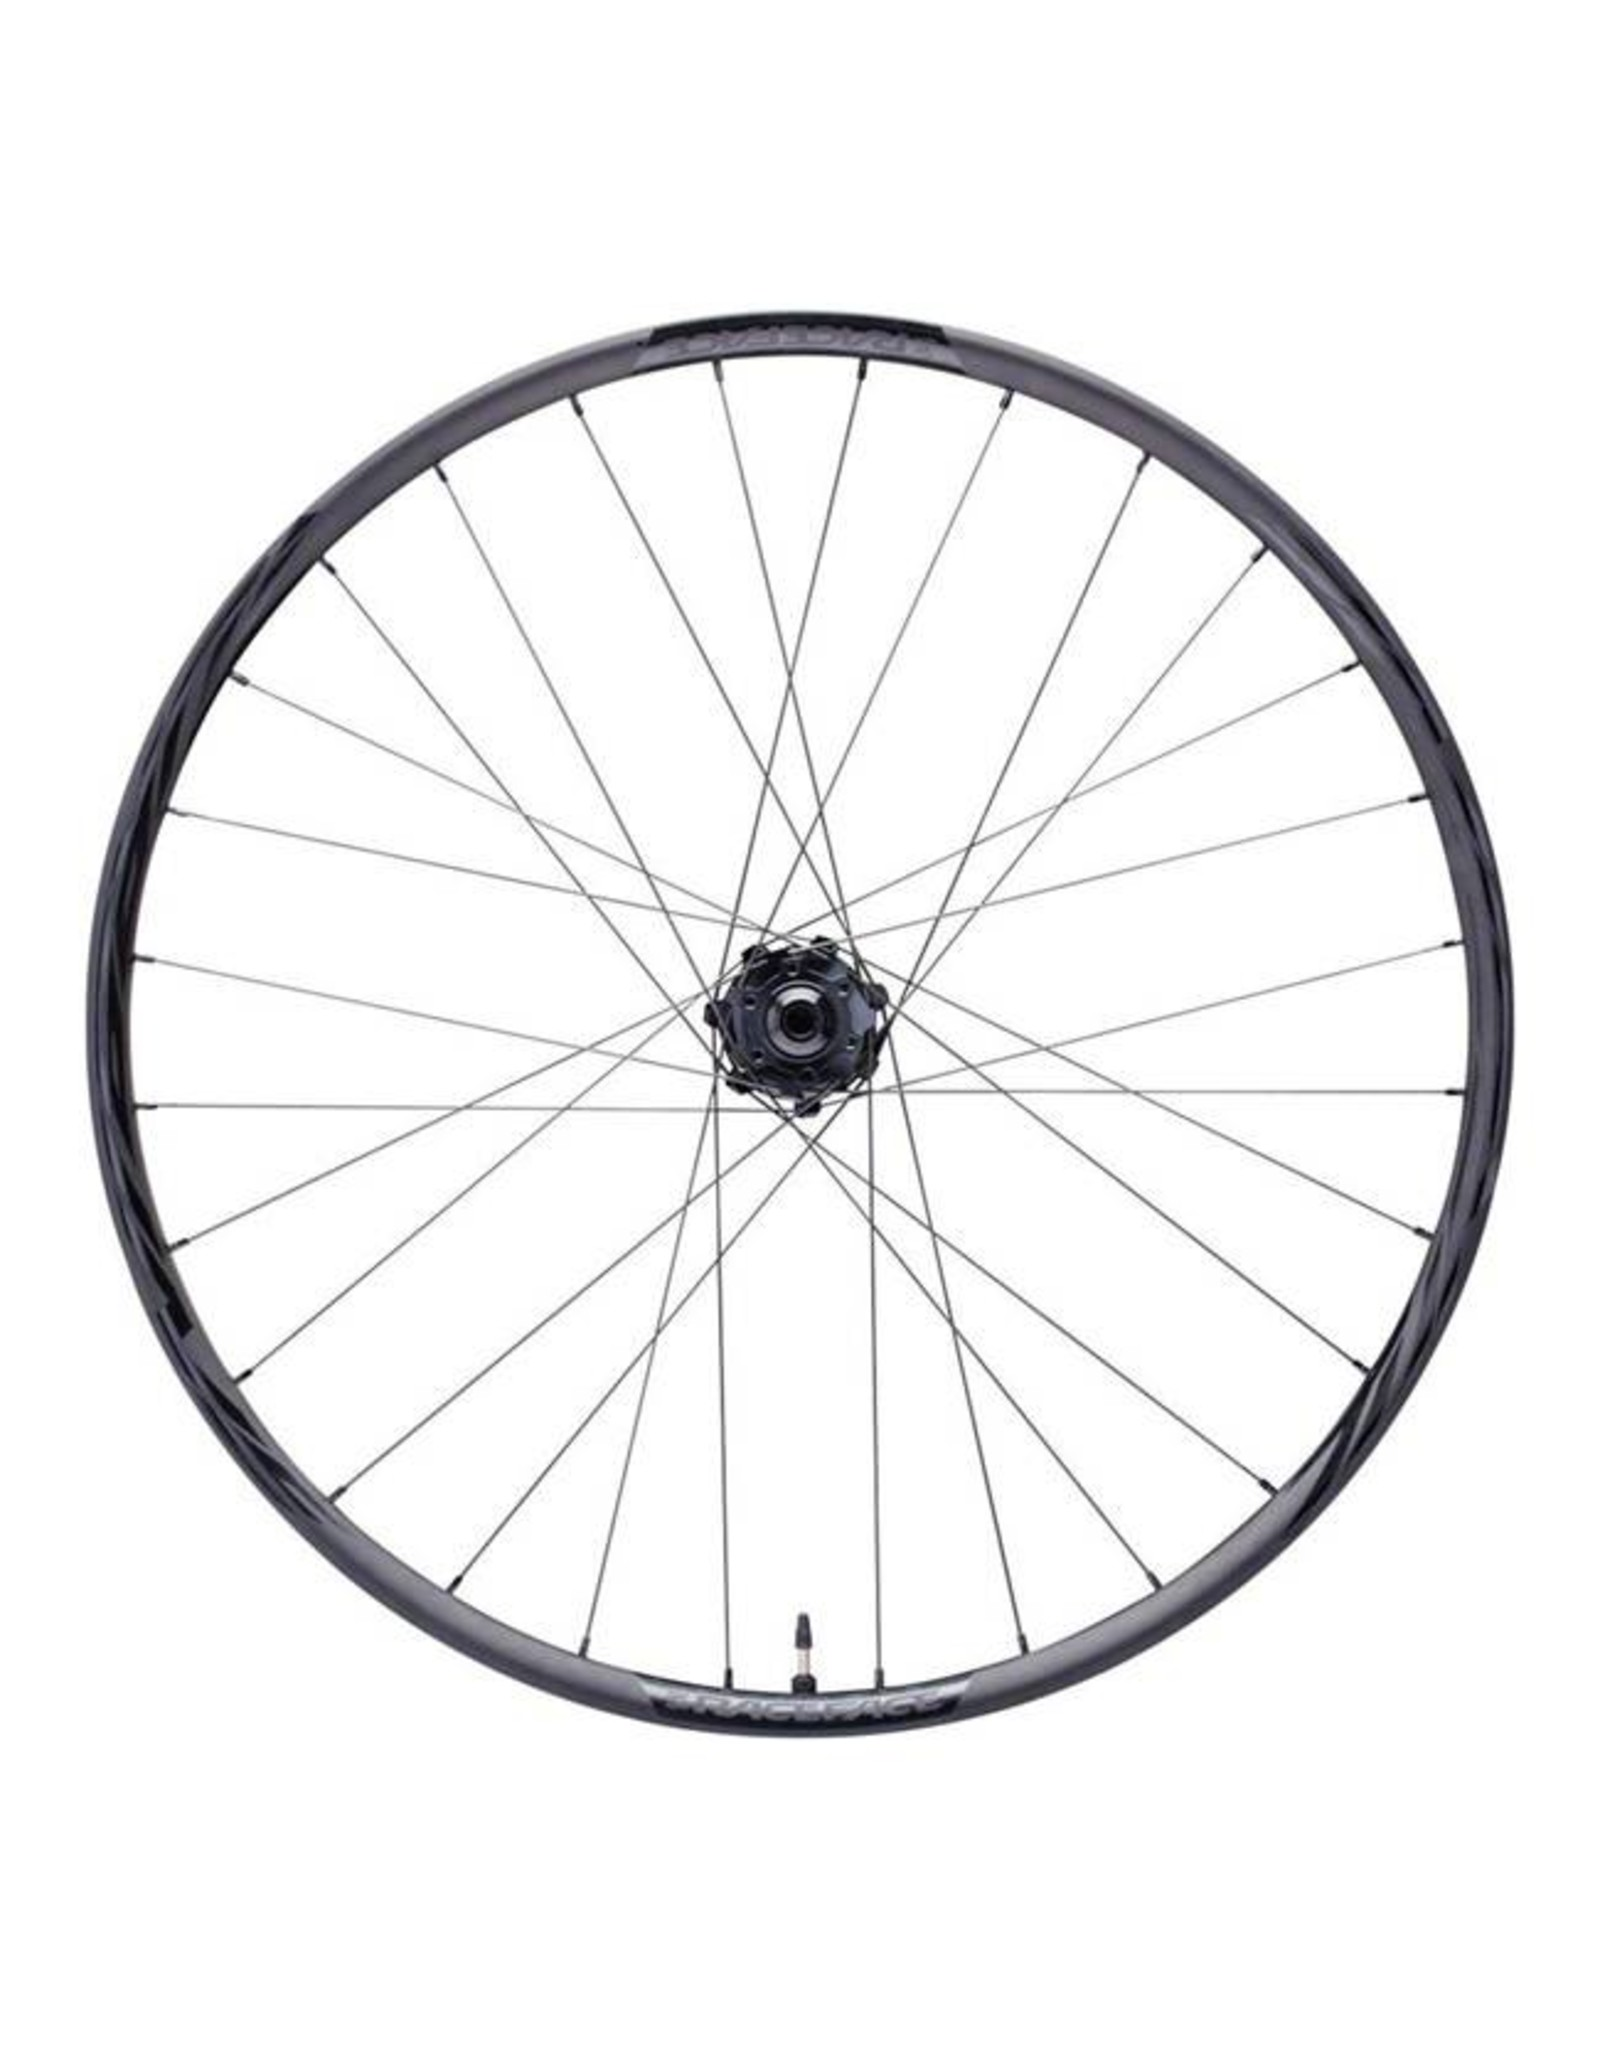 "RaceFace RaceFace Turbine R Rear Wheel: 29"", Alloy Rim, 12 x 148mm Thru Axle, Shimano Freehub"